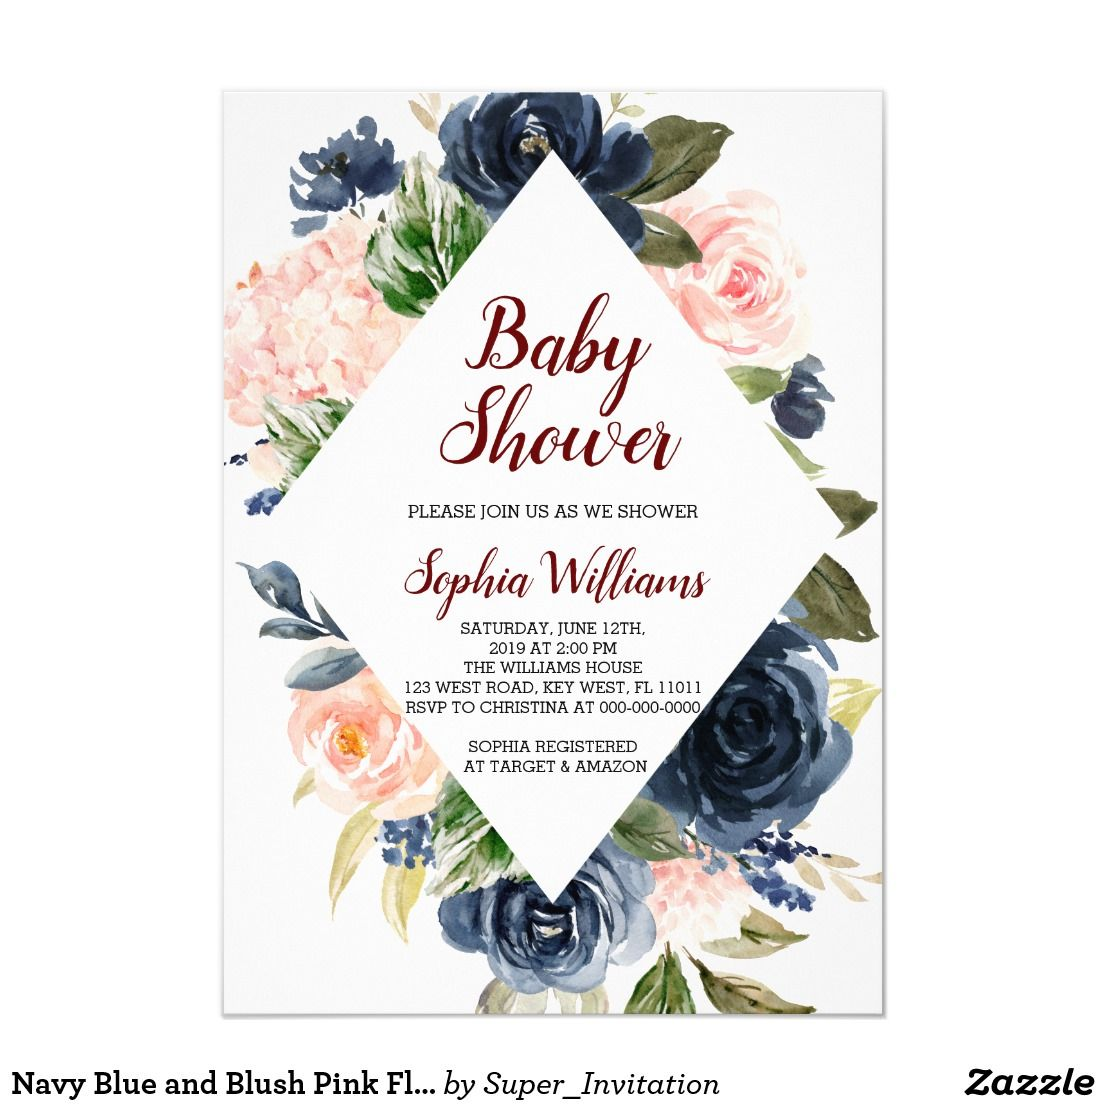 Navy Blue and Blush Pink Flowers Baby Shower Invitation | Zazzle.com |  Flower baby shower invites, Bridal shower invitations flowers, Baby shower  flowers